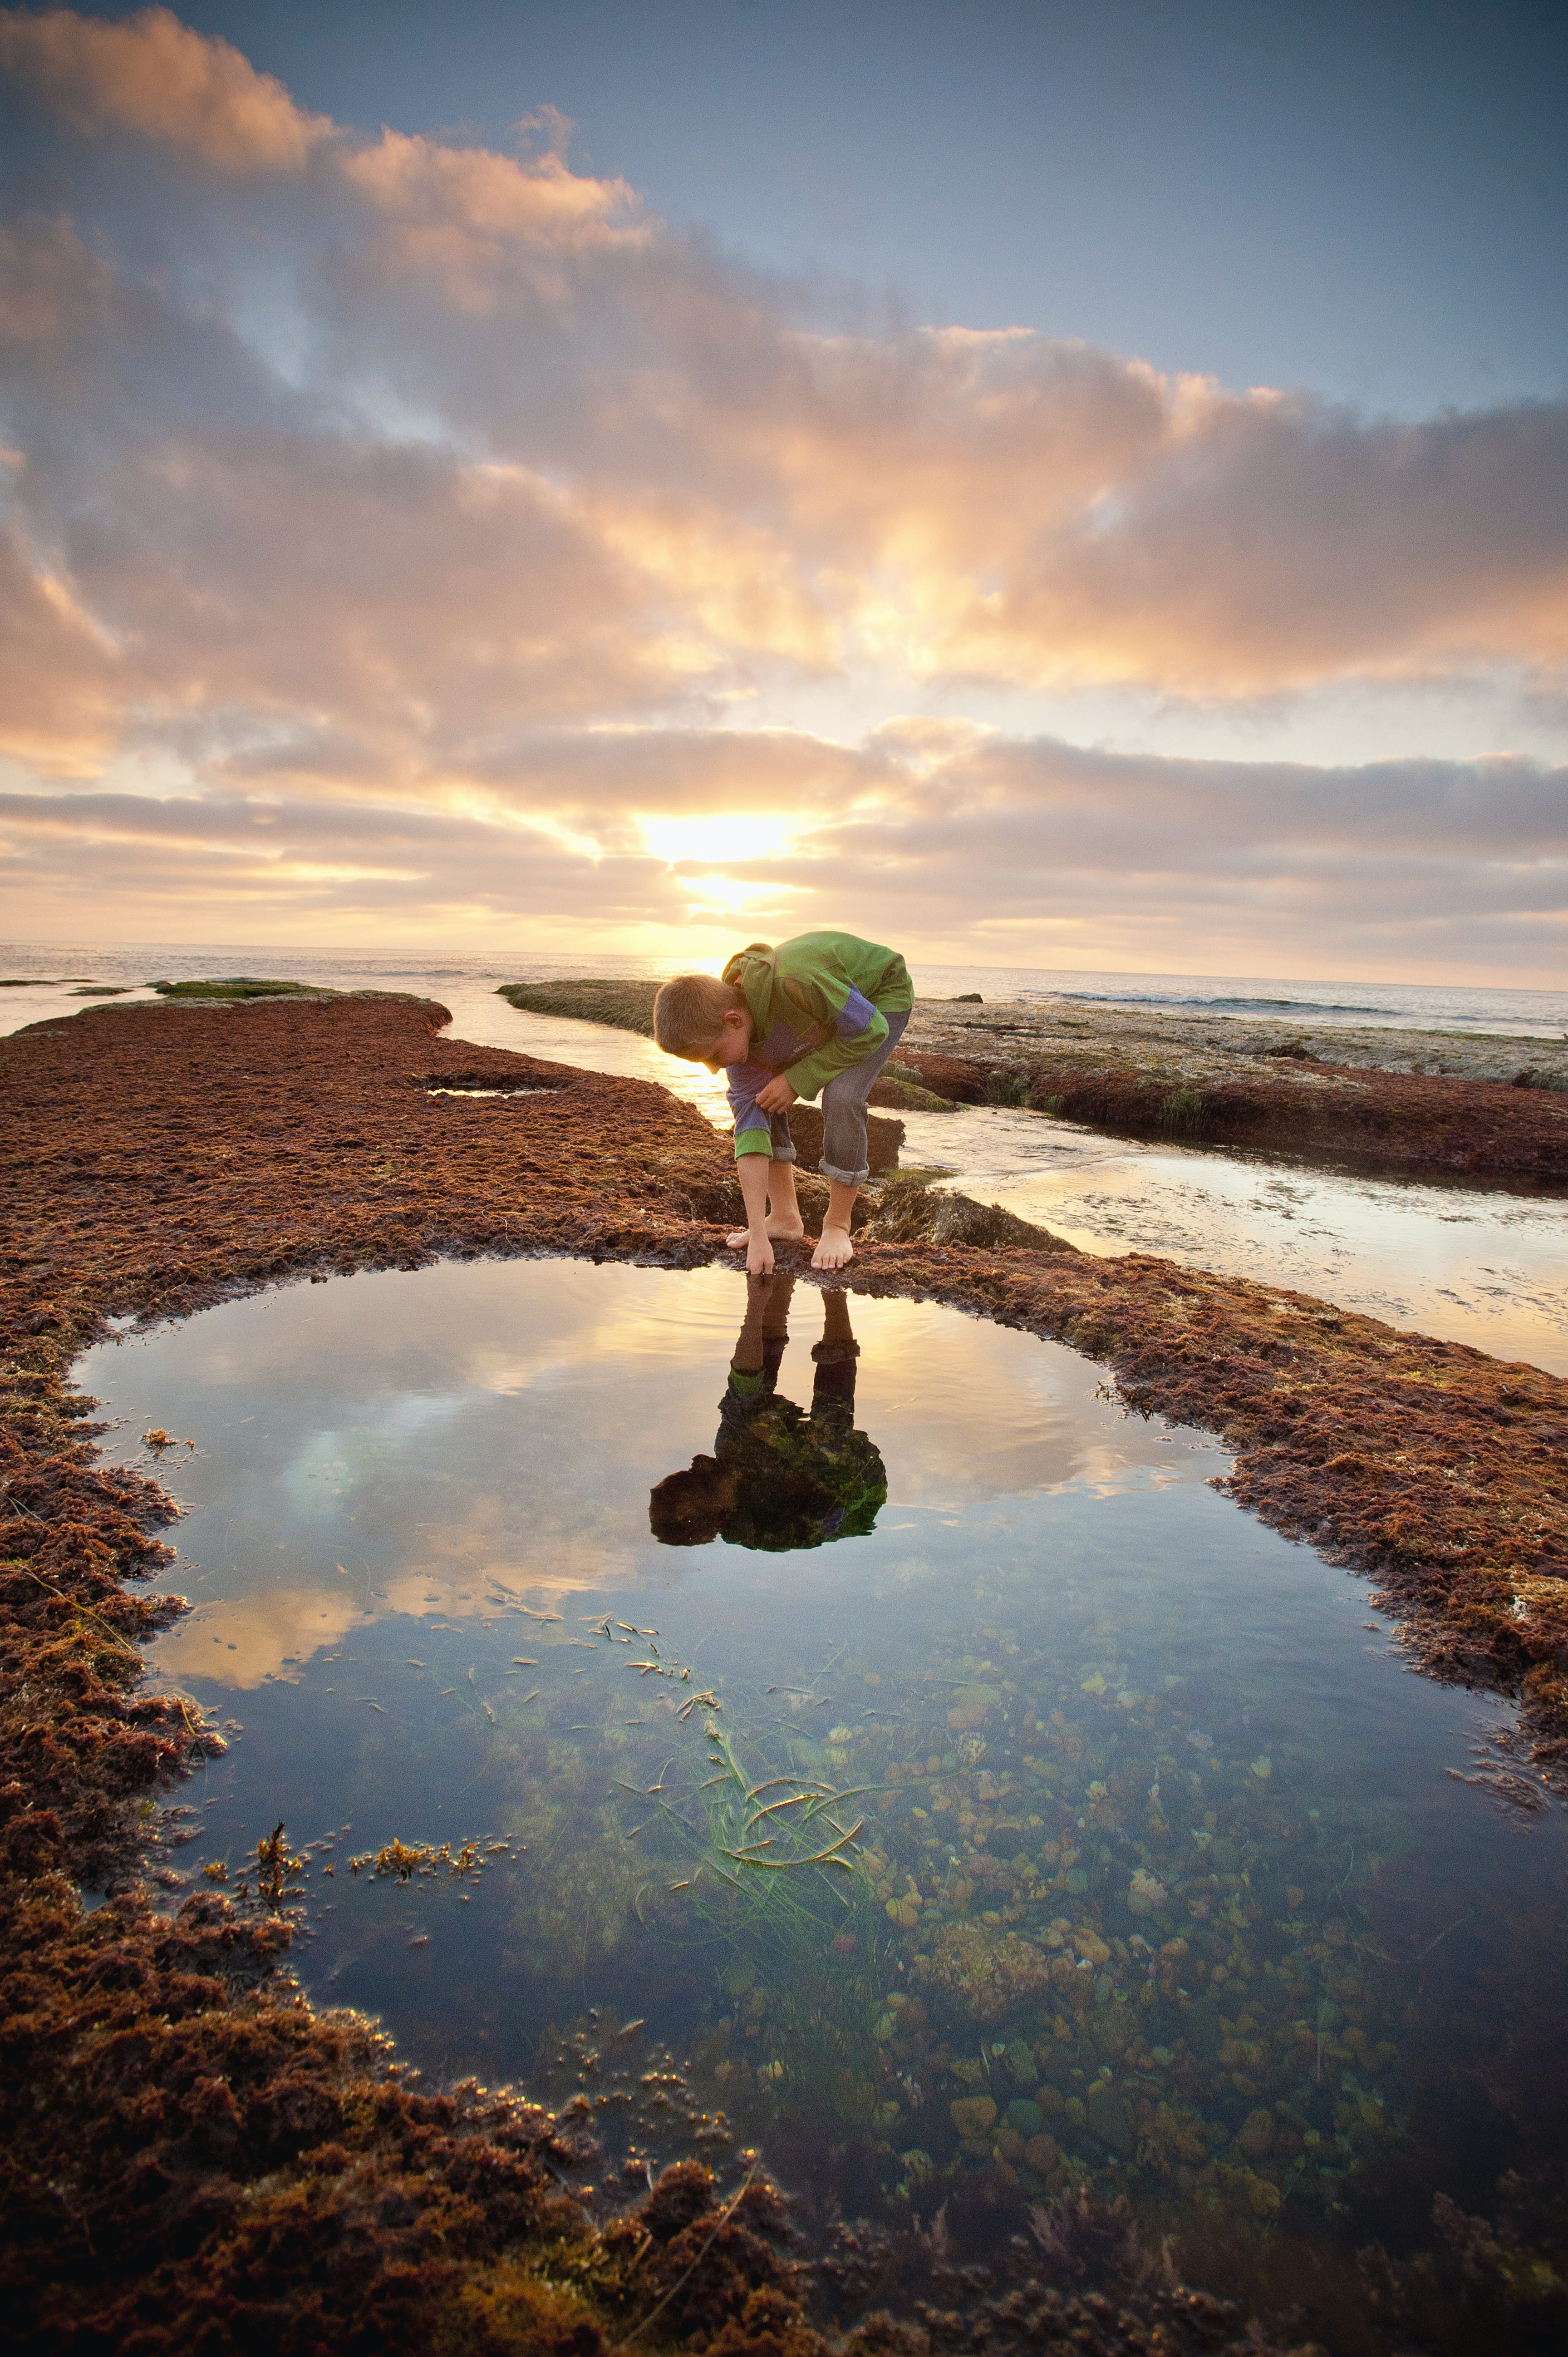 A boy examines a tide pool on the beach during sunset © Stephen Simpson / Getty Images